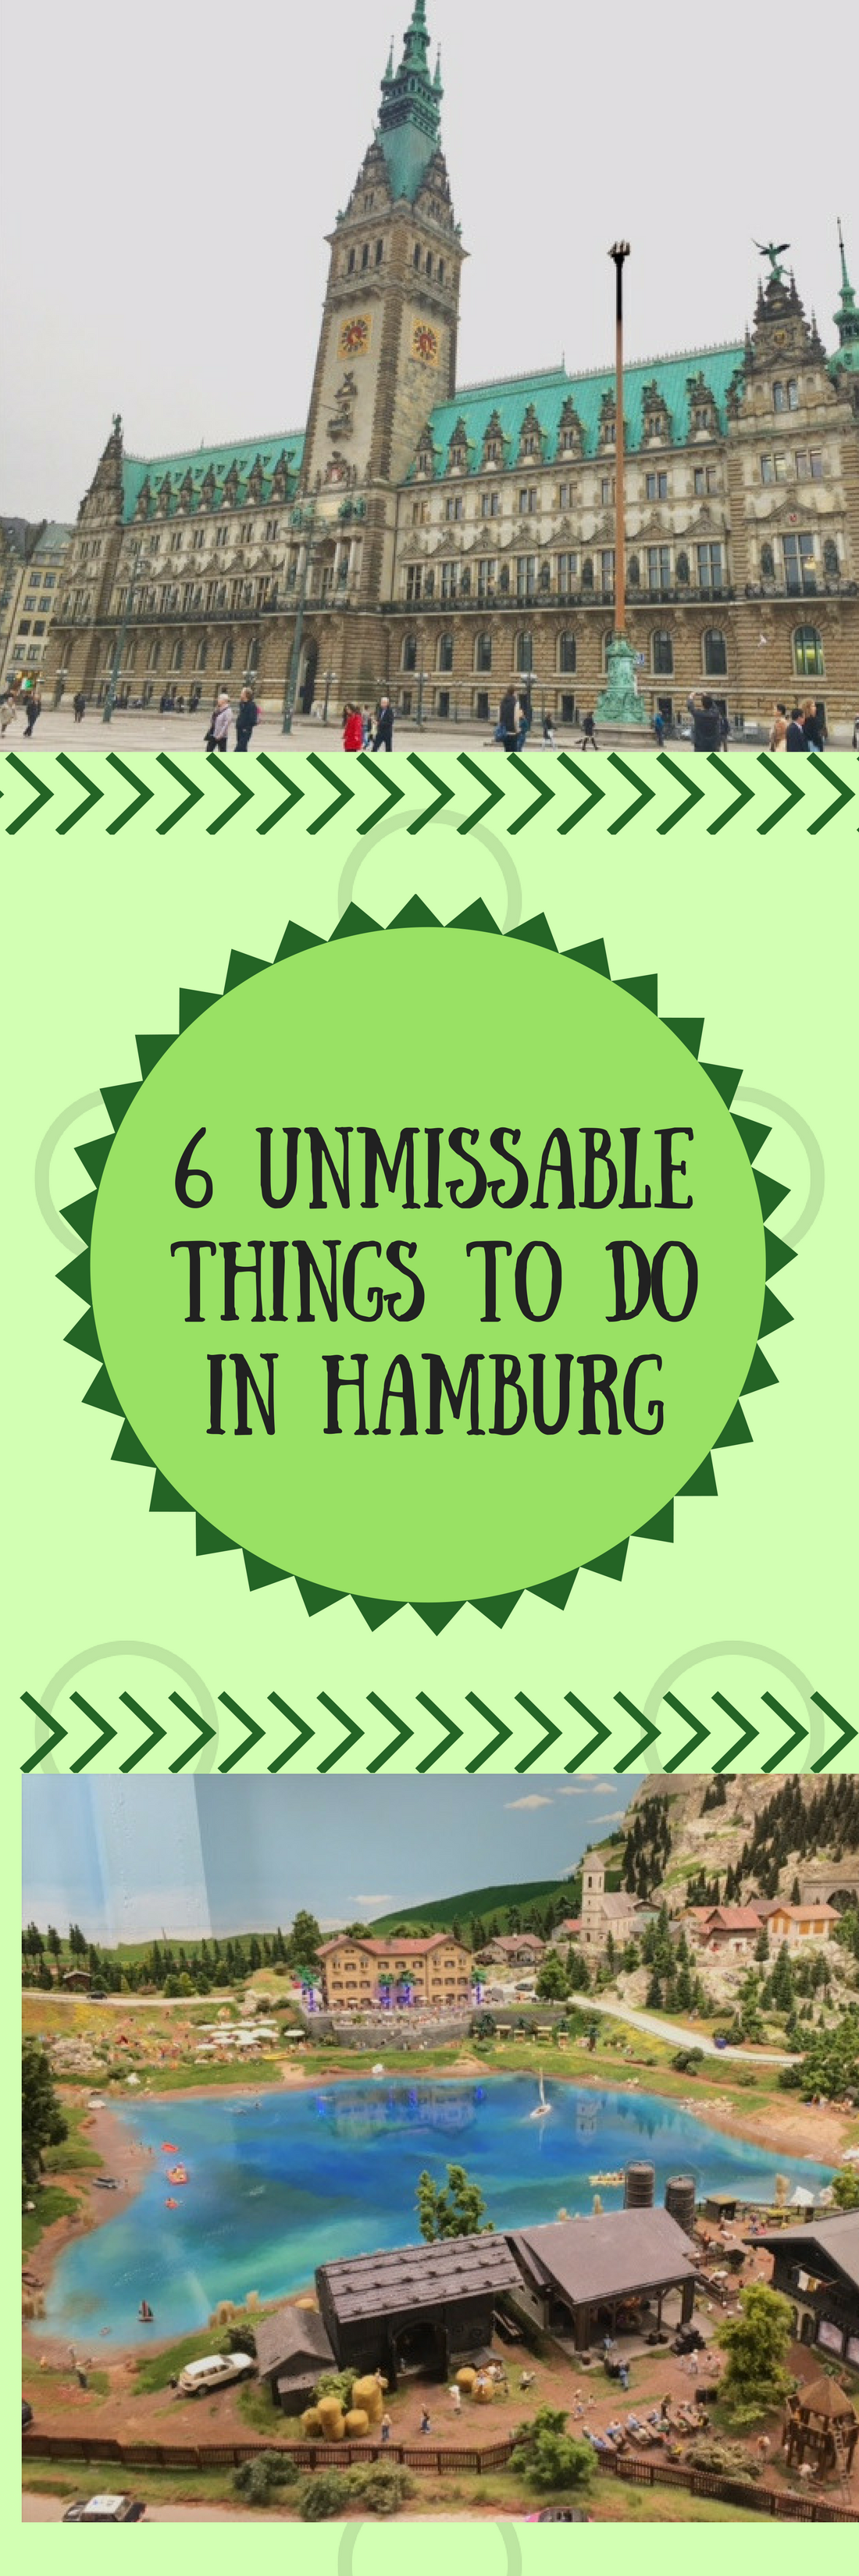 6 Unmissable Things to Do in Hamburg